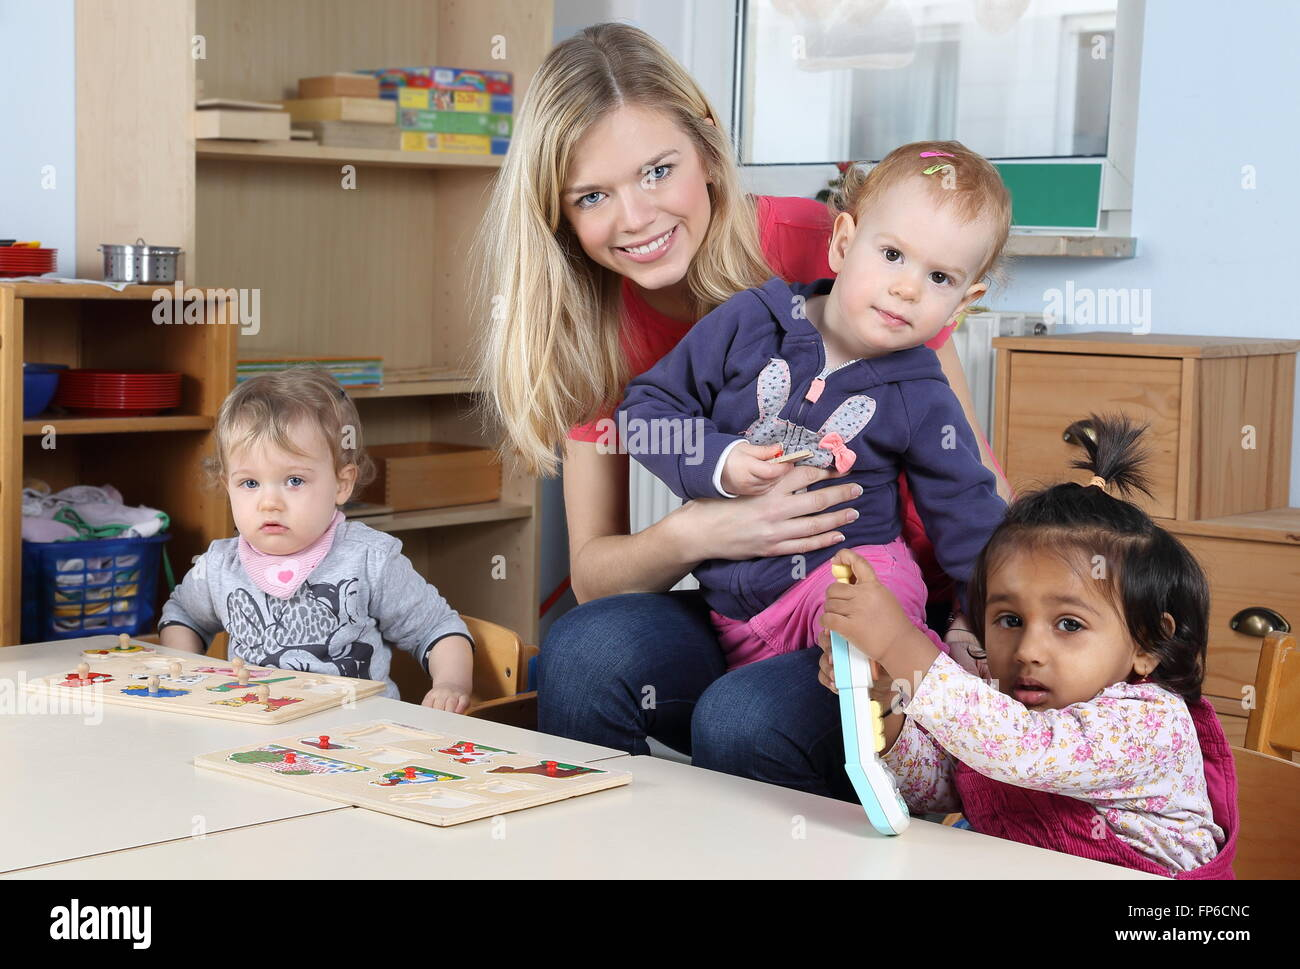 A Day care or kindergarten kids and teacher playing with a puzzle - Stock Image